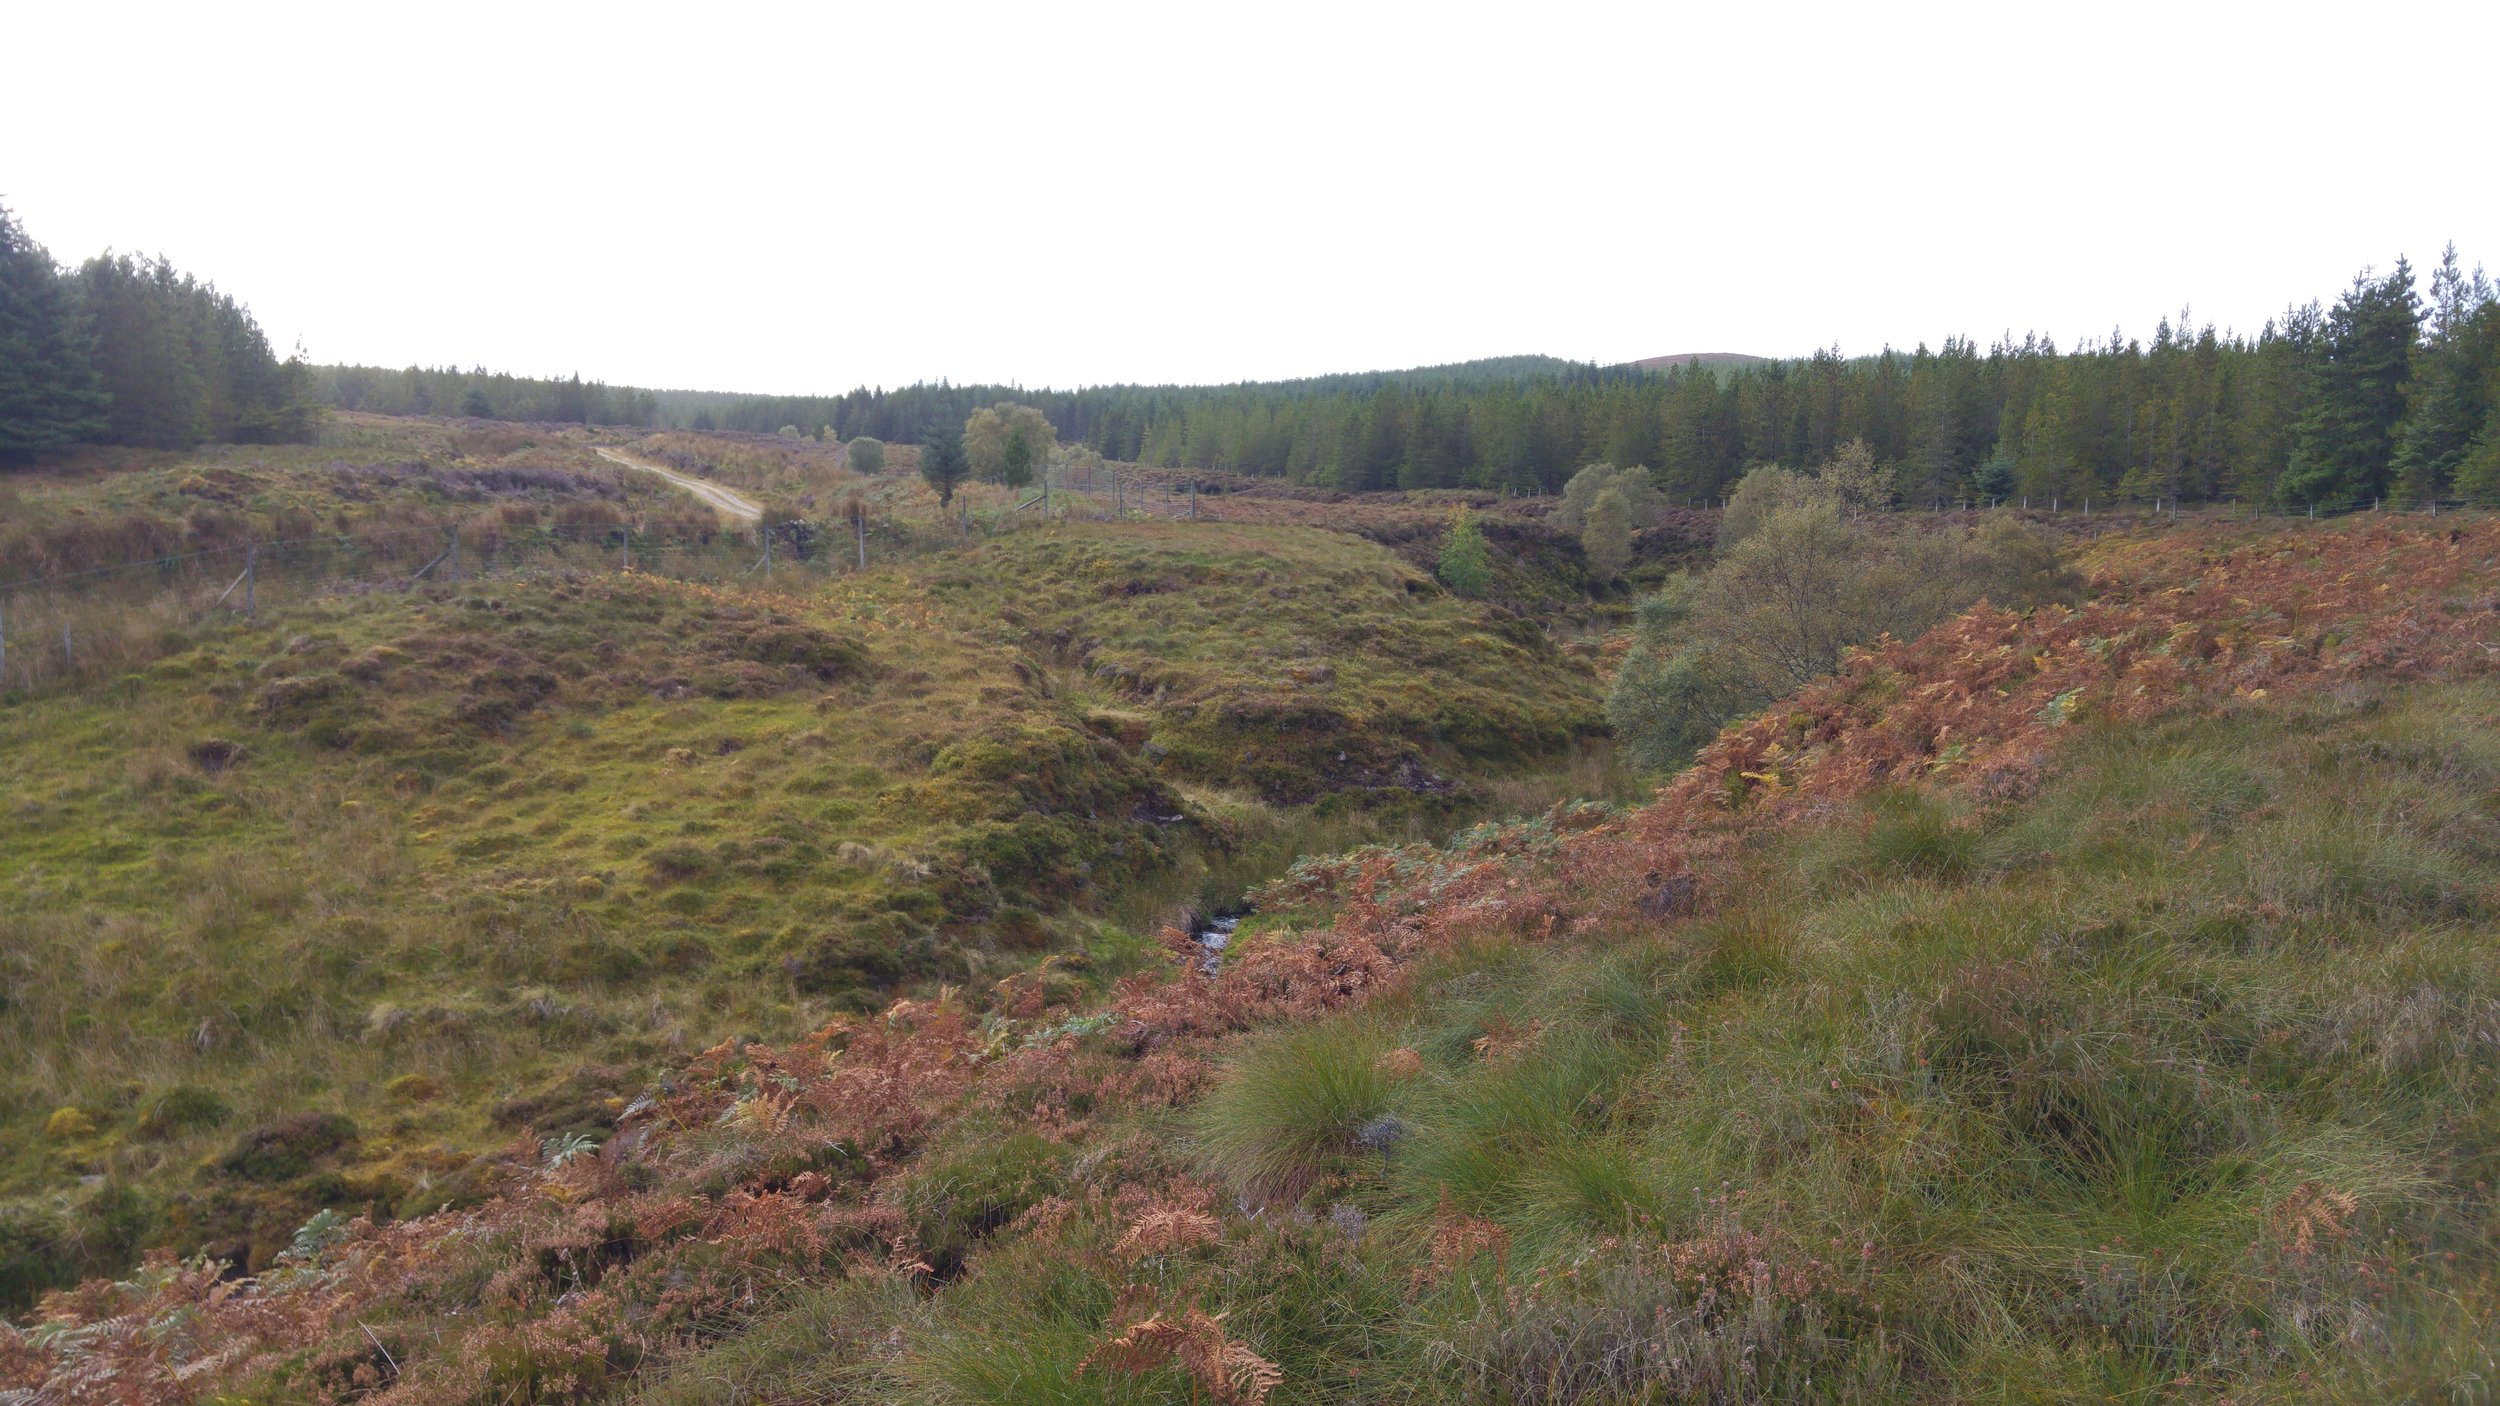 Upon first glance, this looks like an ideal place to plant some trees: small knolls of well drained ground within the riparian zone with an underlying mineral soil and reasonable fertility. Actually, upon looking more closely, my peat probe indicated that the peat was too deep for any tree planting work to be eligible for grant support and that most of the project costs would probably have to be met by the landowner.